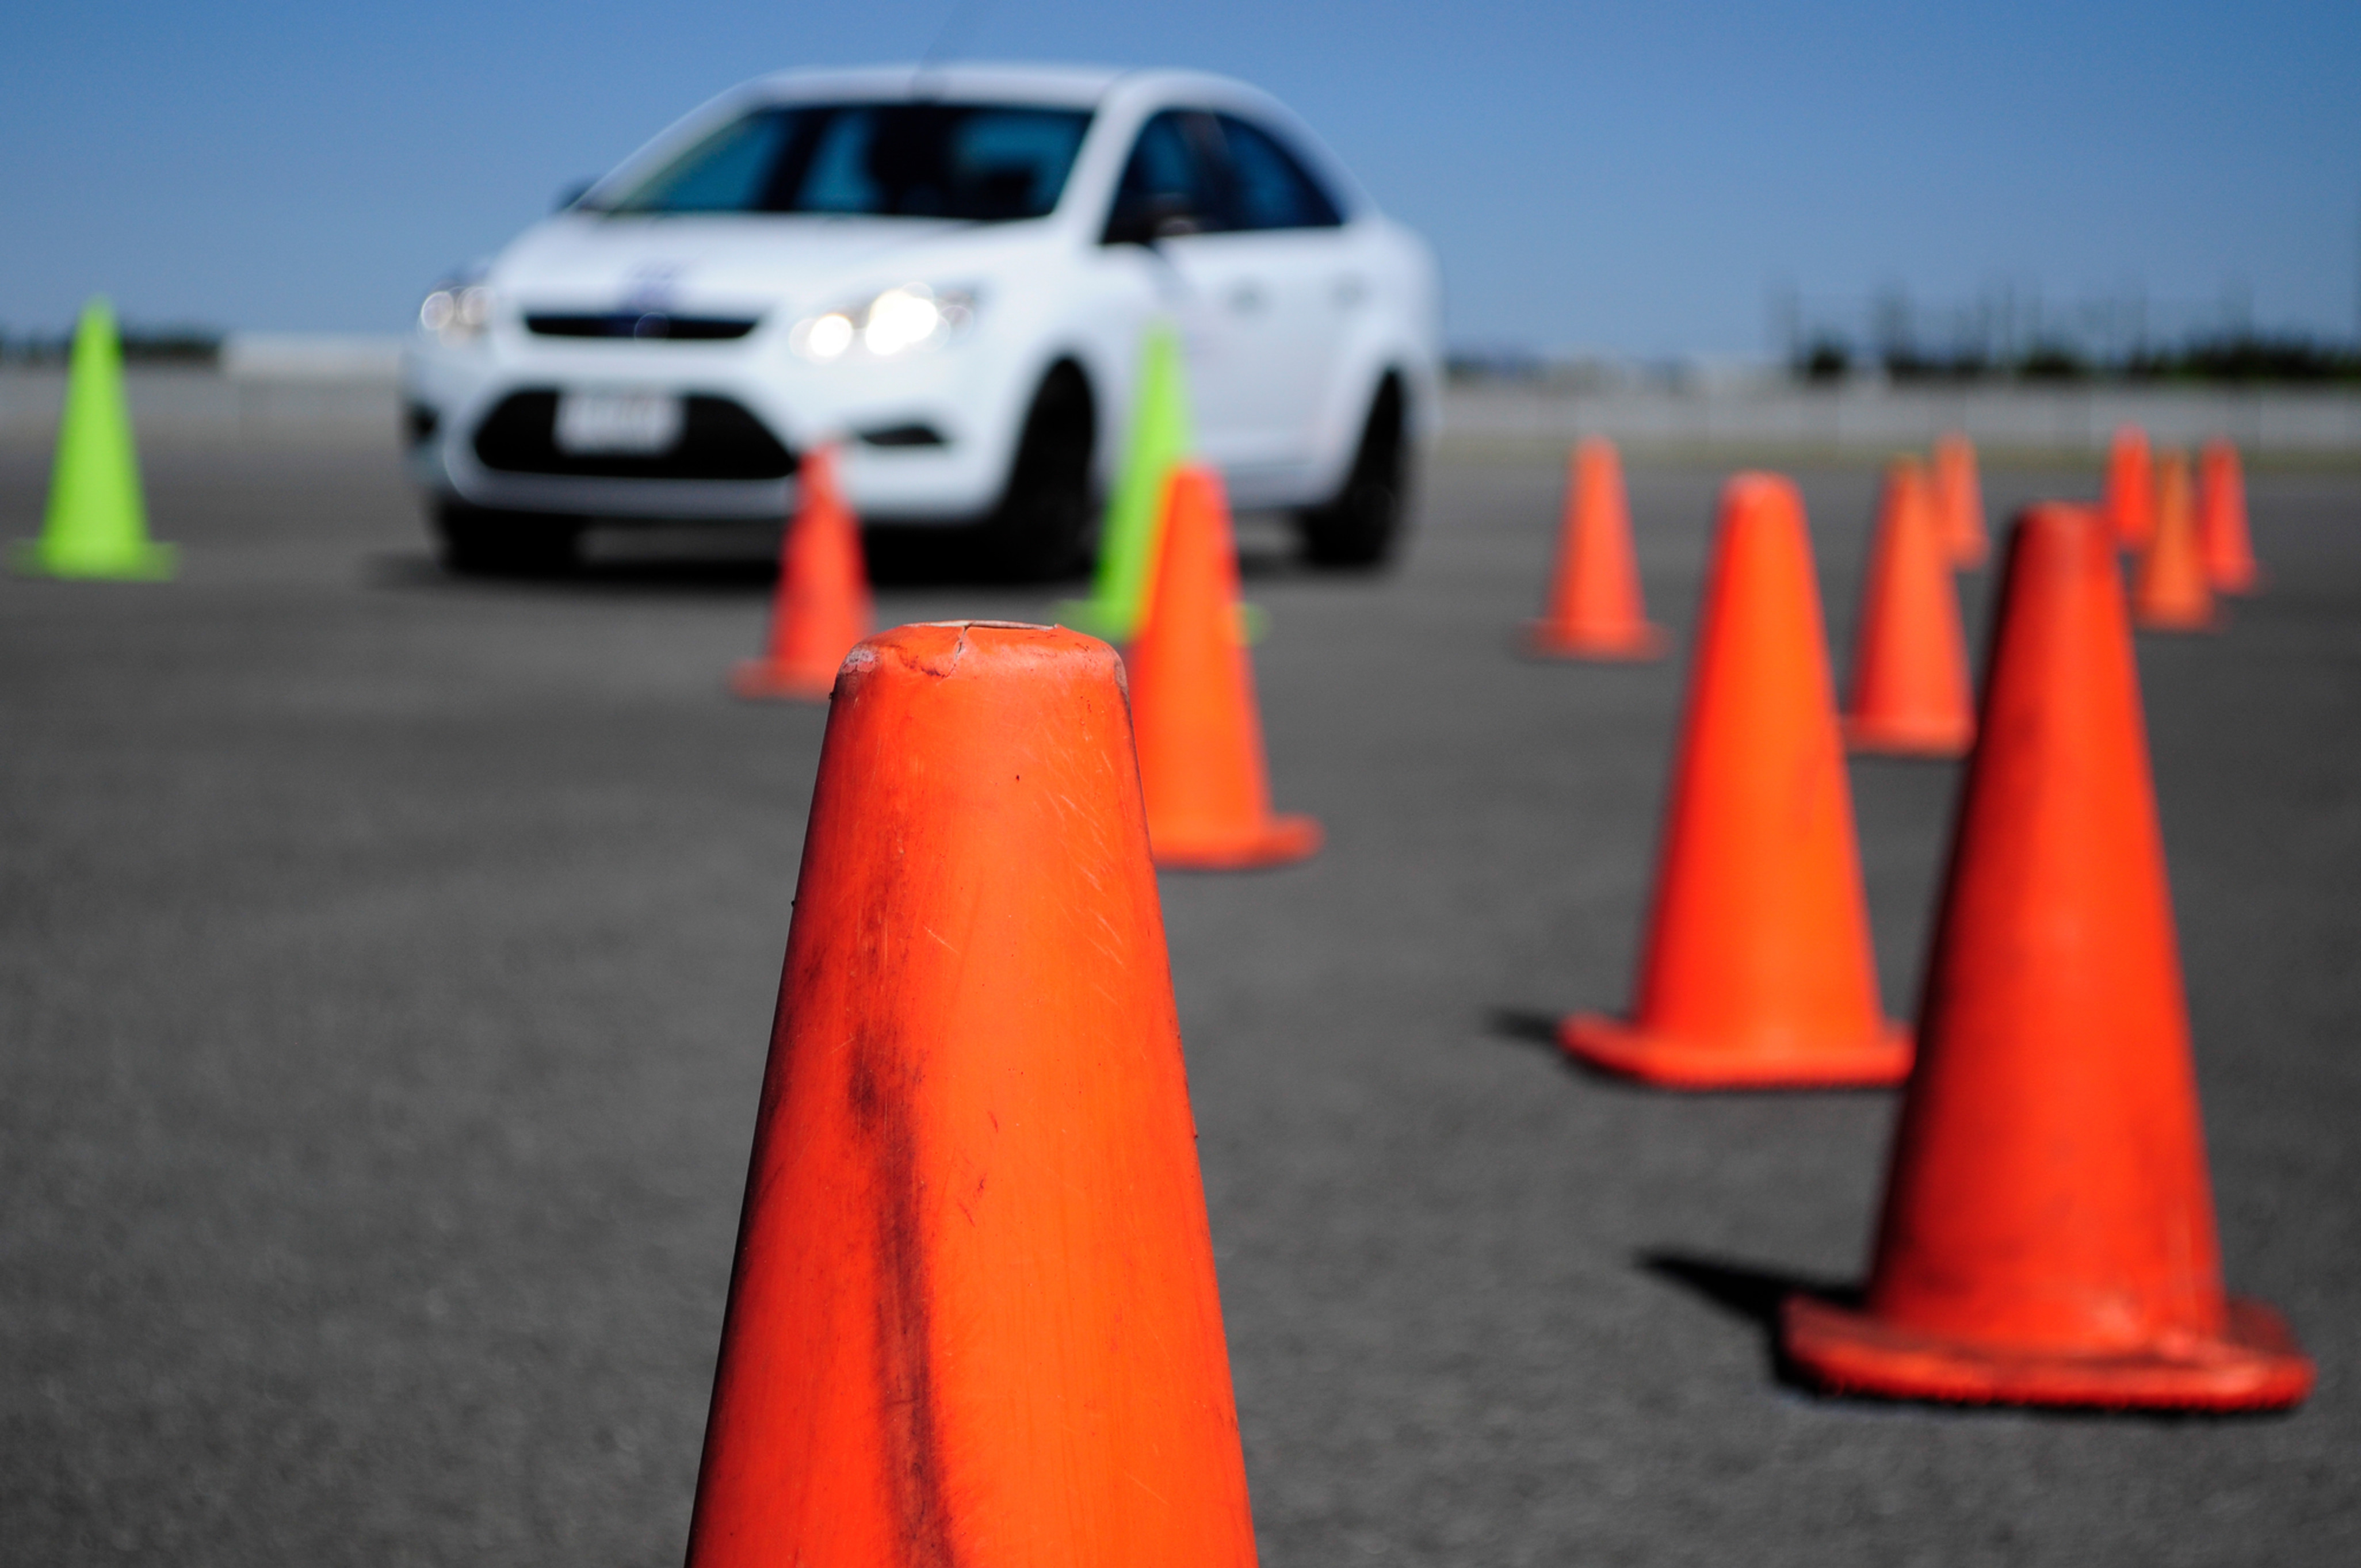 Request a car for Road test